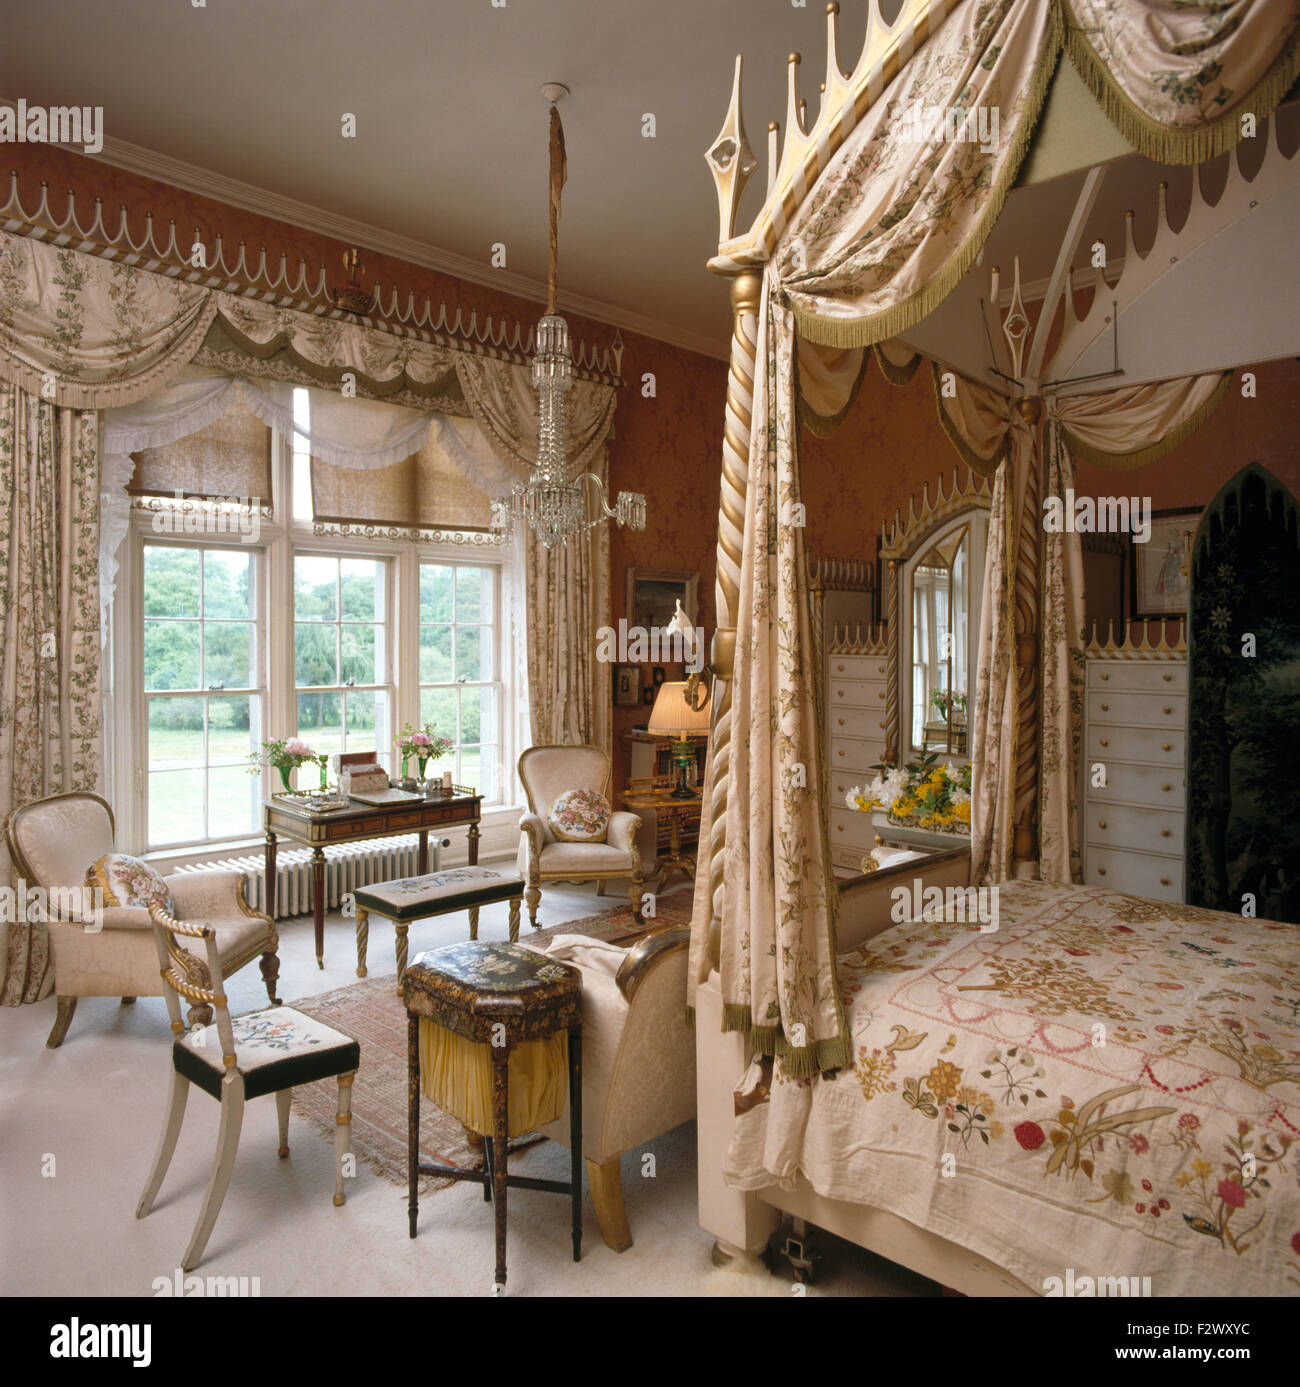 Bedroom ceiling drapes - Stock Photo Swagged Curtains On Window In Opulent Bedroom With Silk Drapes On A Gothic Style Four Poster Bed